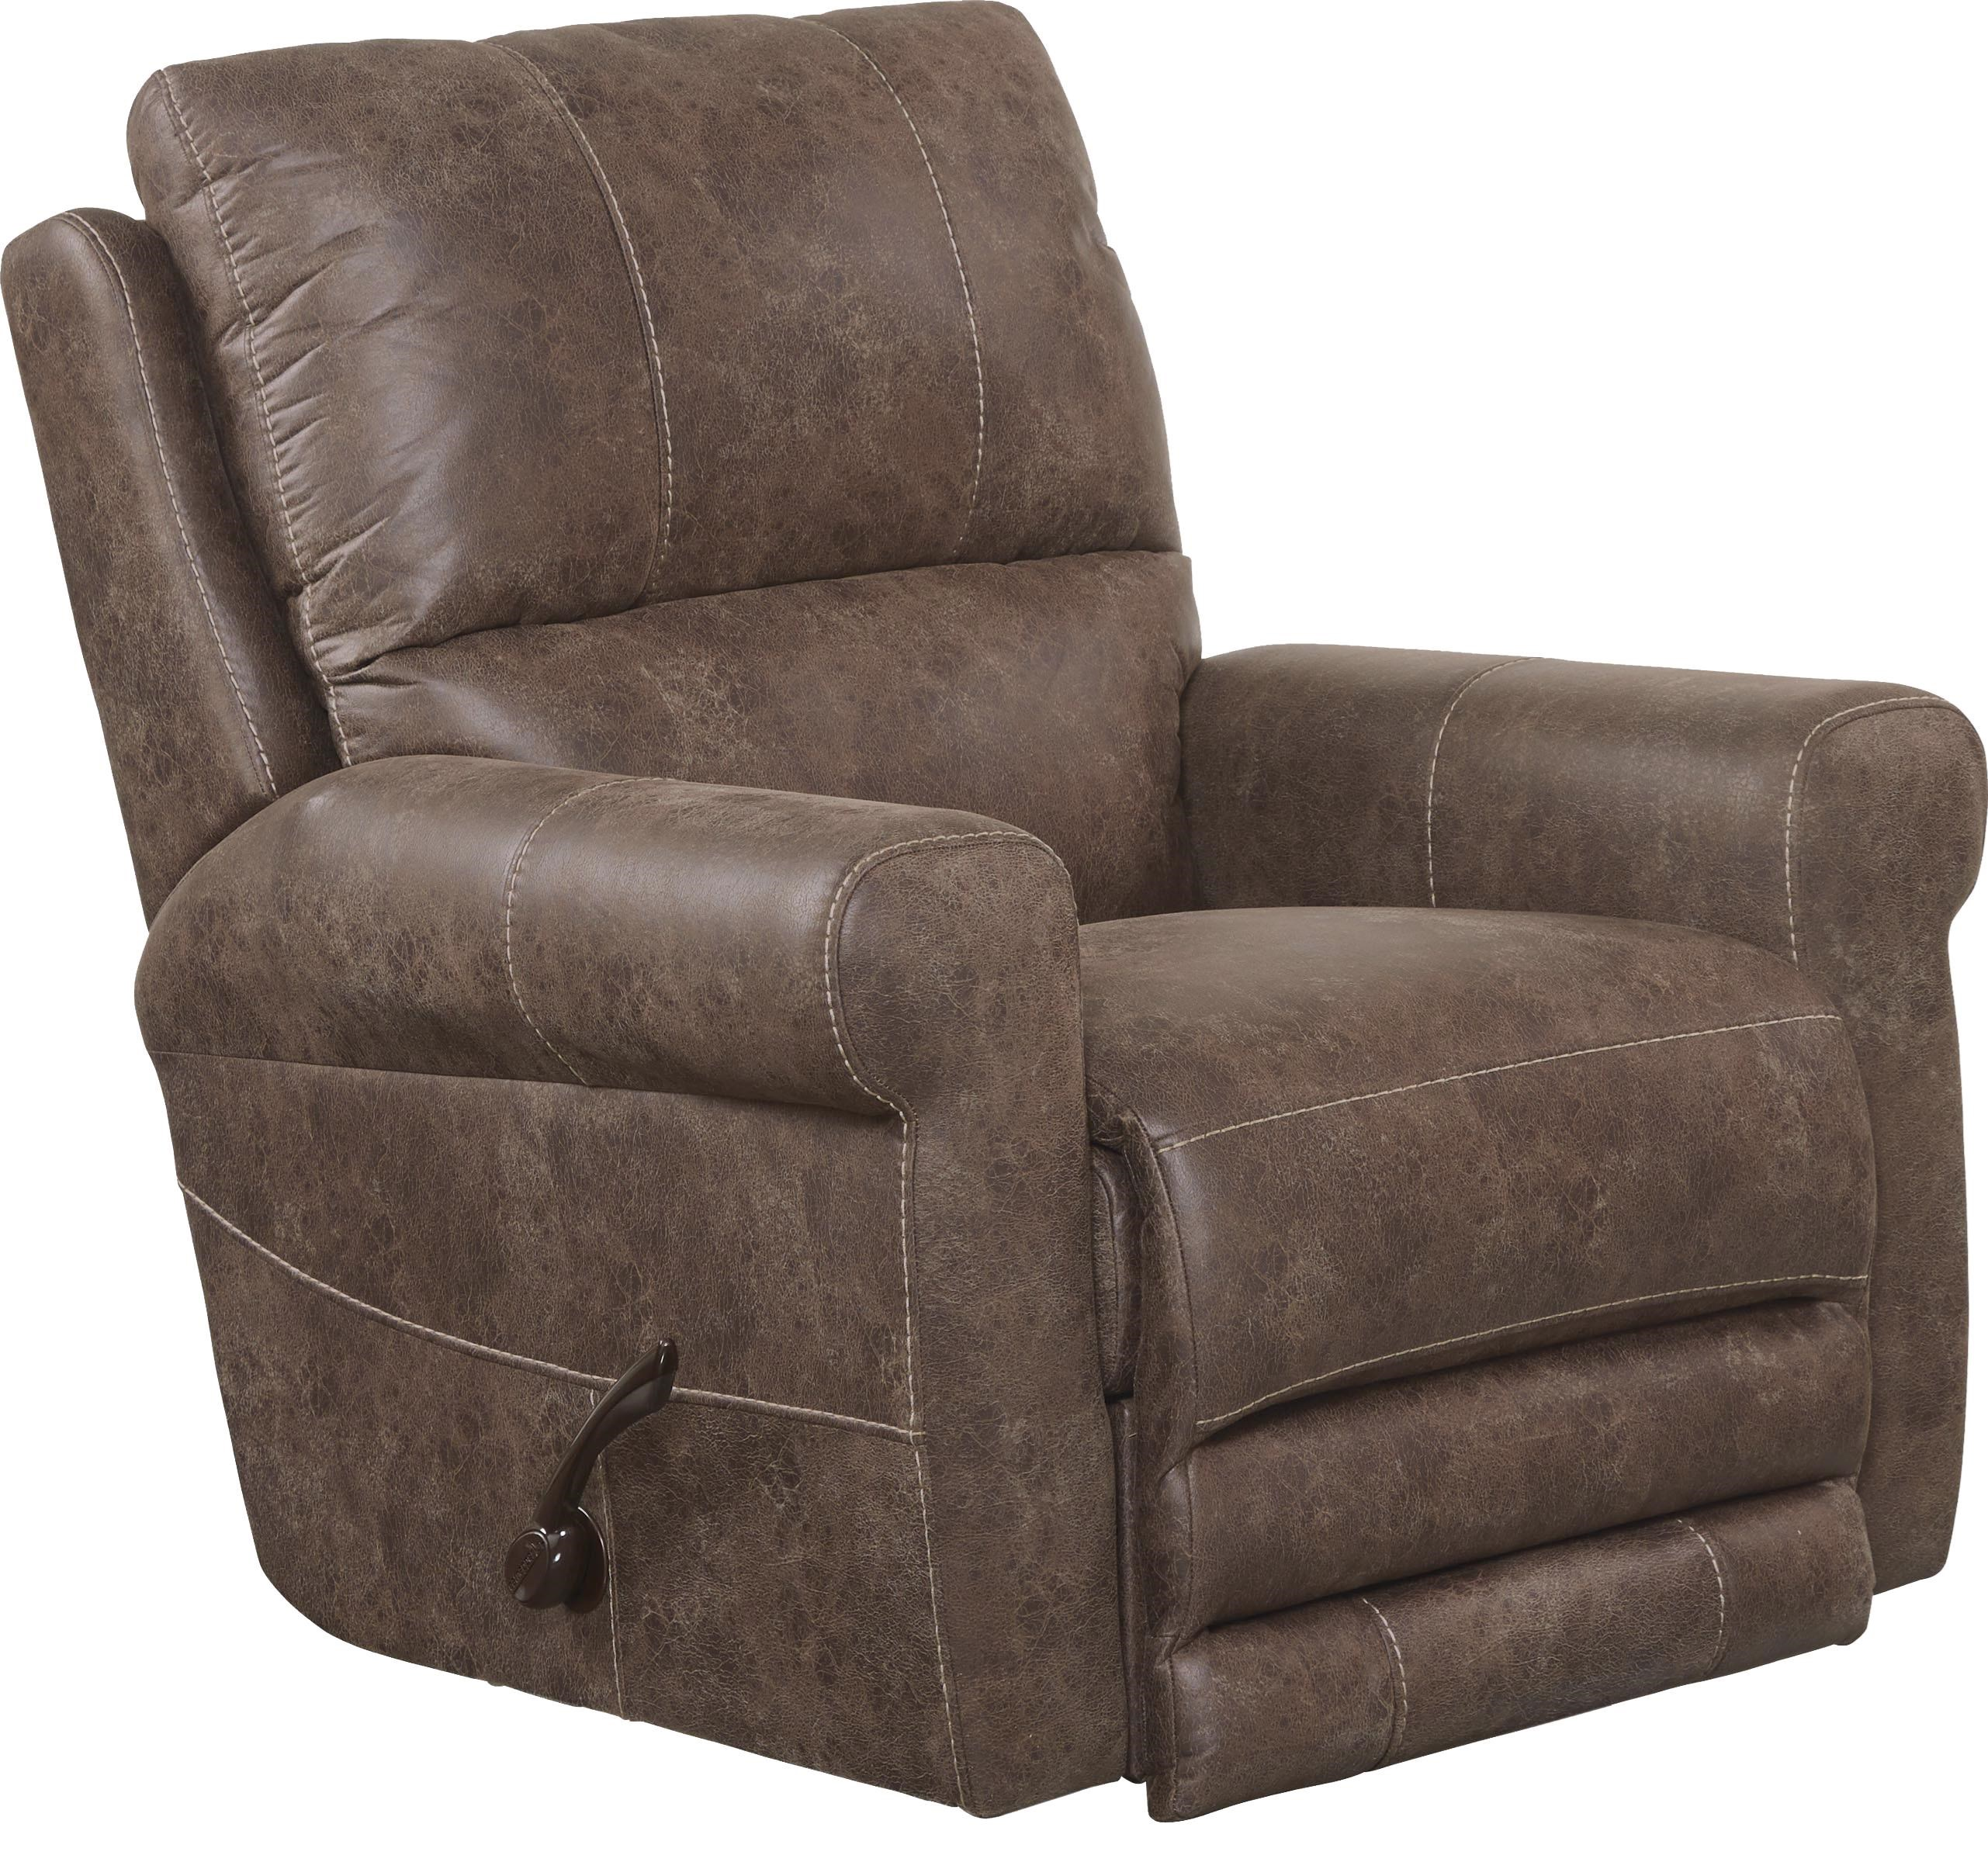 Catnapper Motion Chairs and Recliners Mad Tanner Swivel Glider